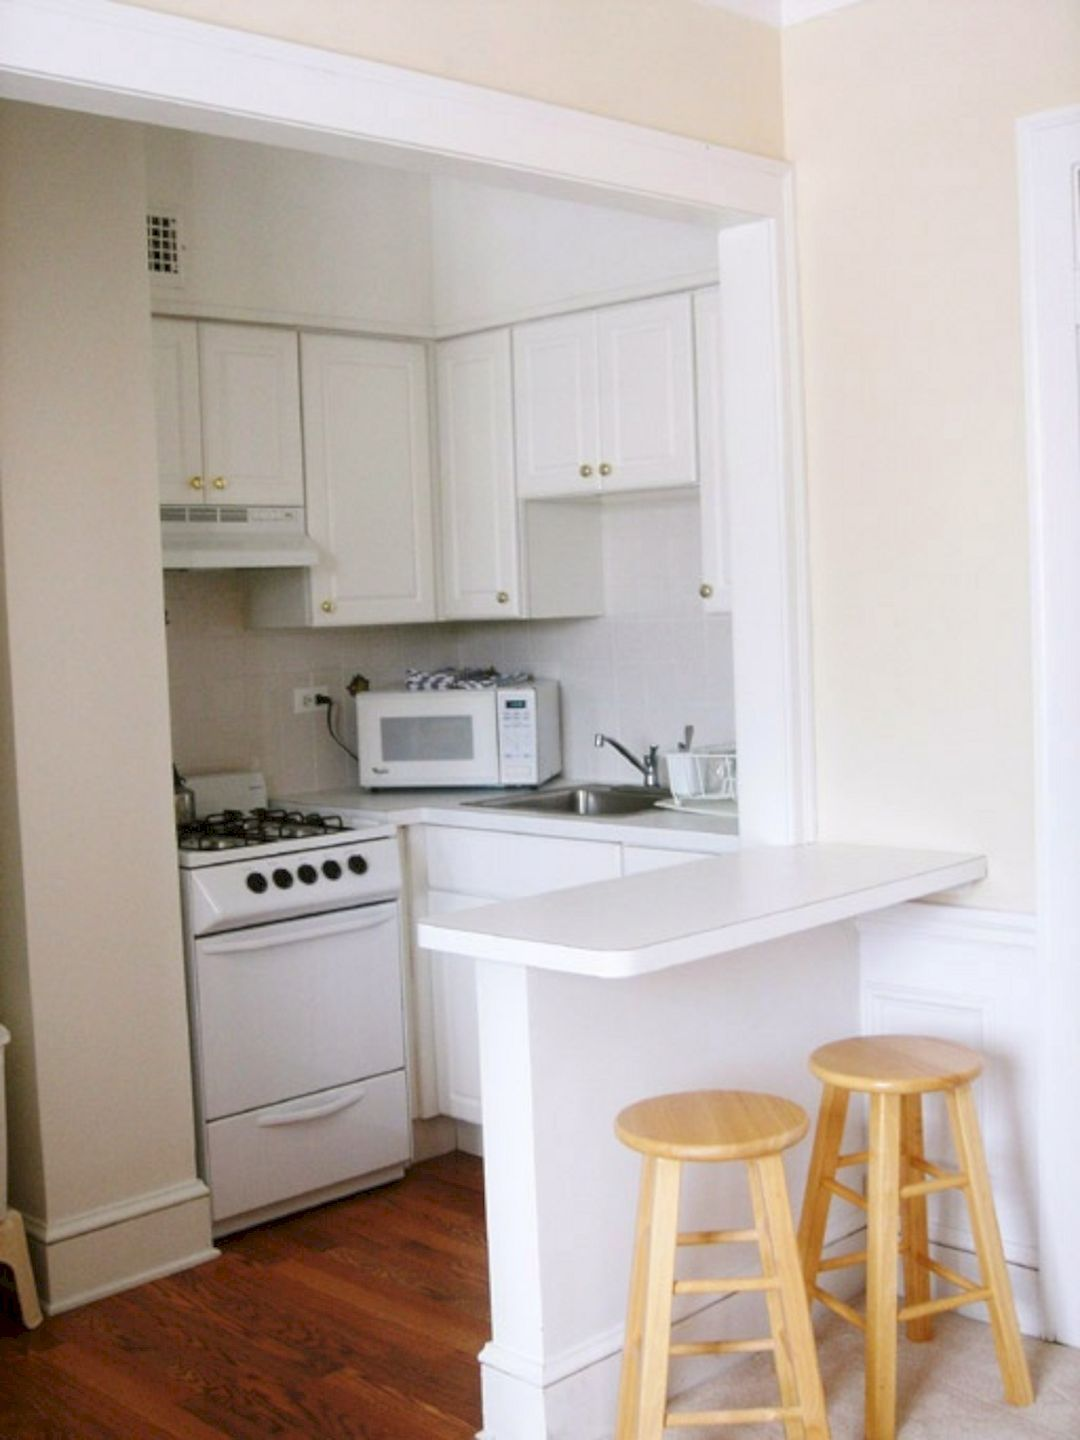 Best A Guide To Efficient Small Kitchen Design For Apartment 640 x 480